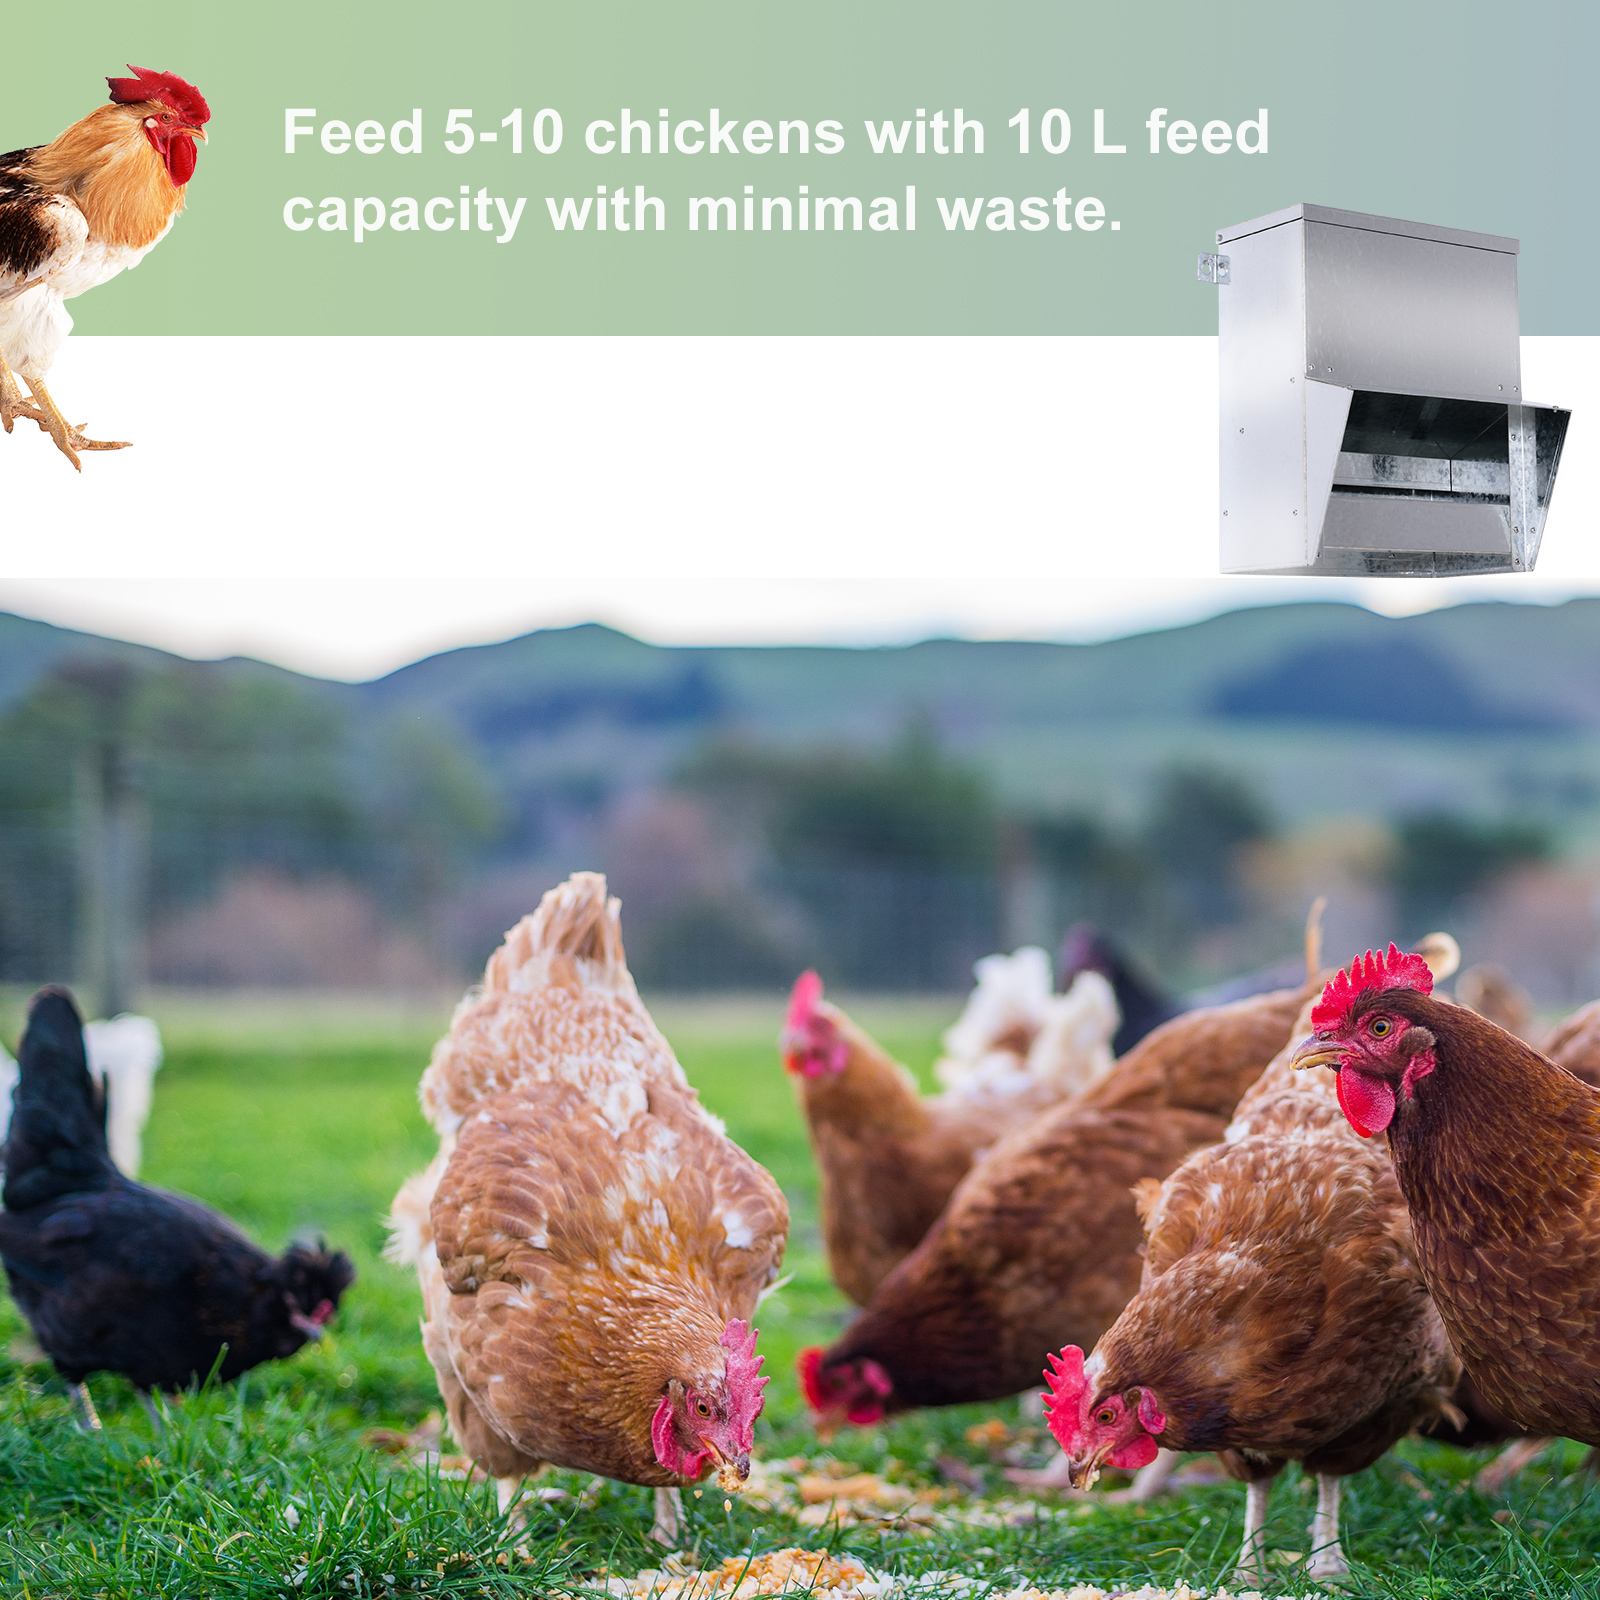 Holds 13 L of Feed PawHut Automatic Chicken Feeder No-Waste Poultry Feeder with Protective Lid for up to 4 Chickens